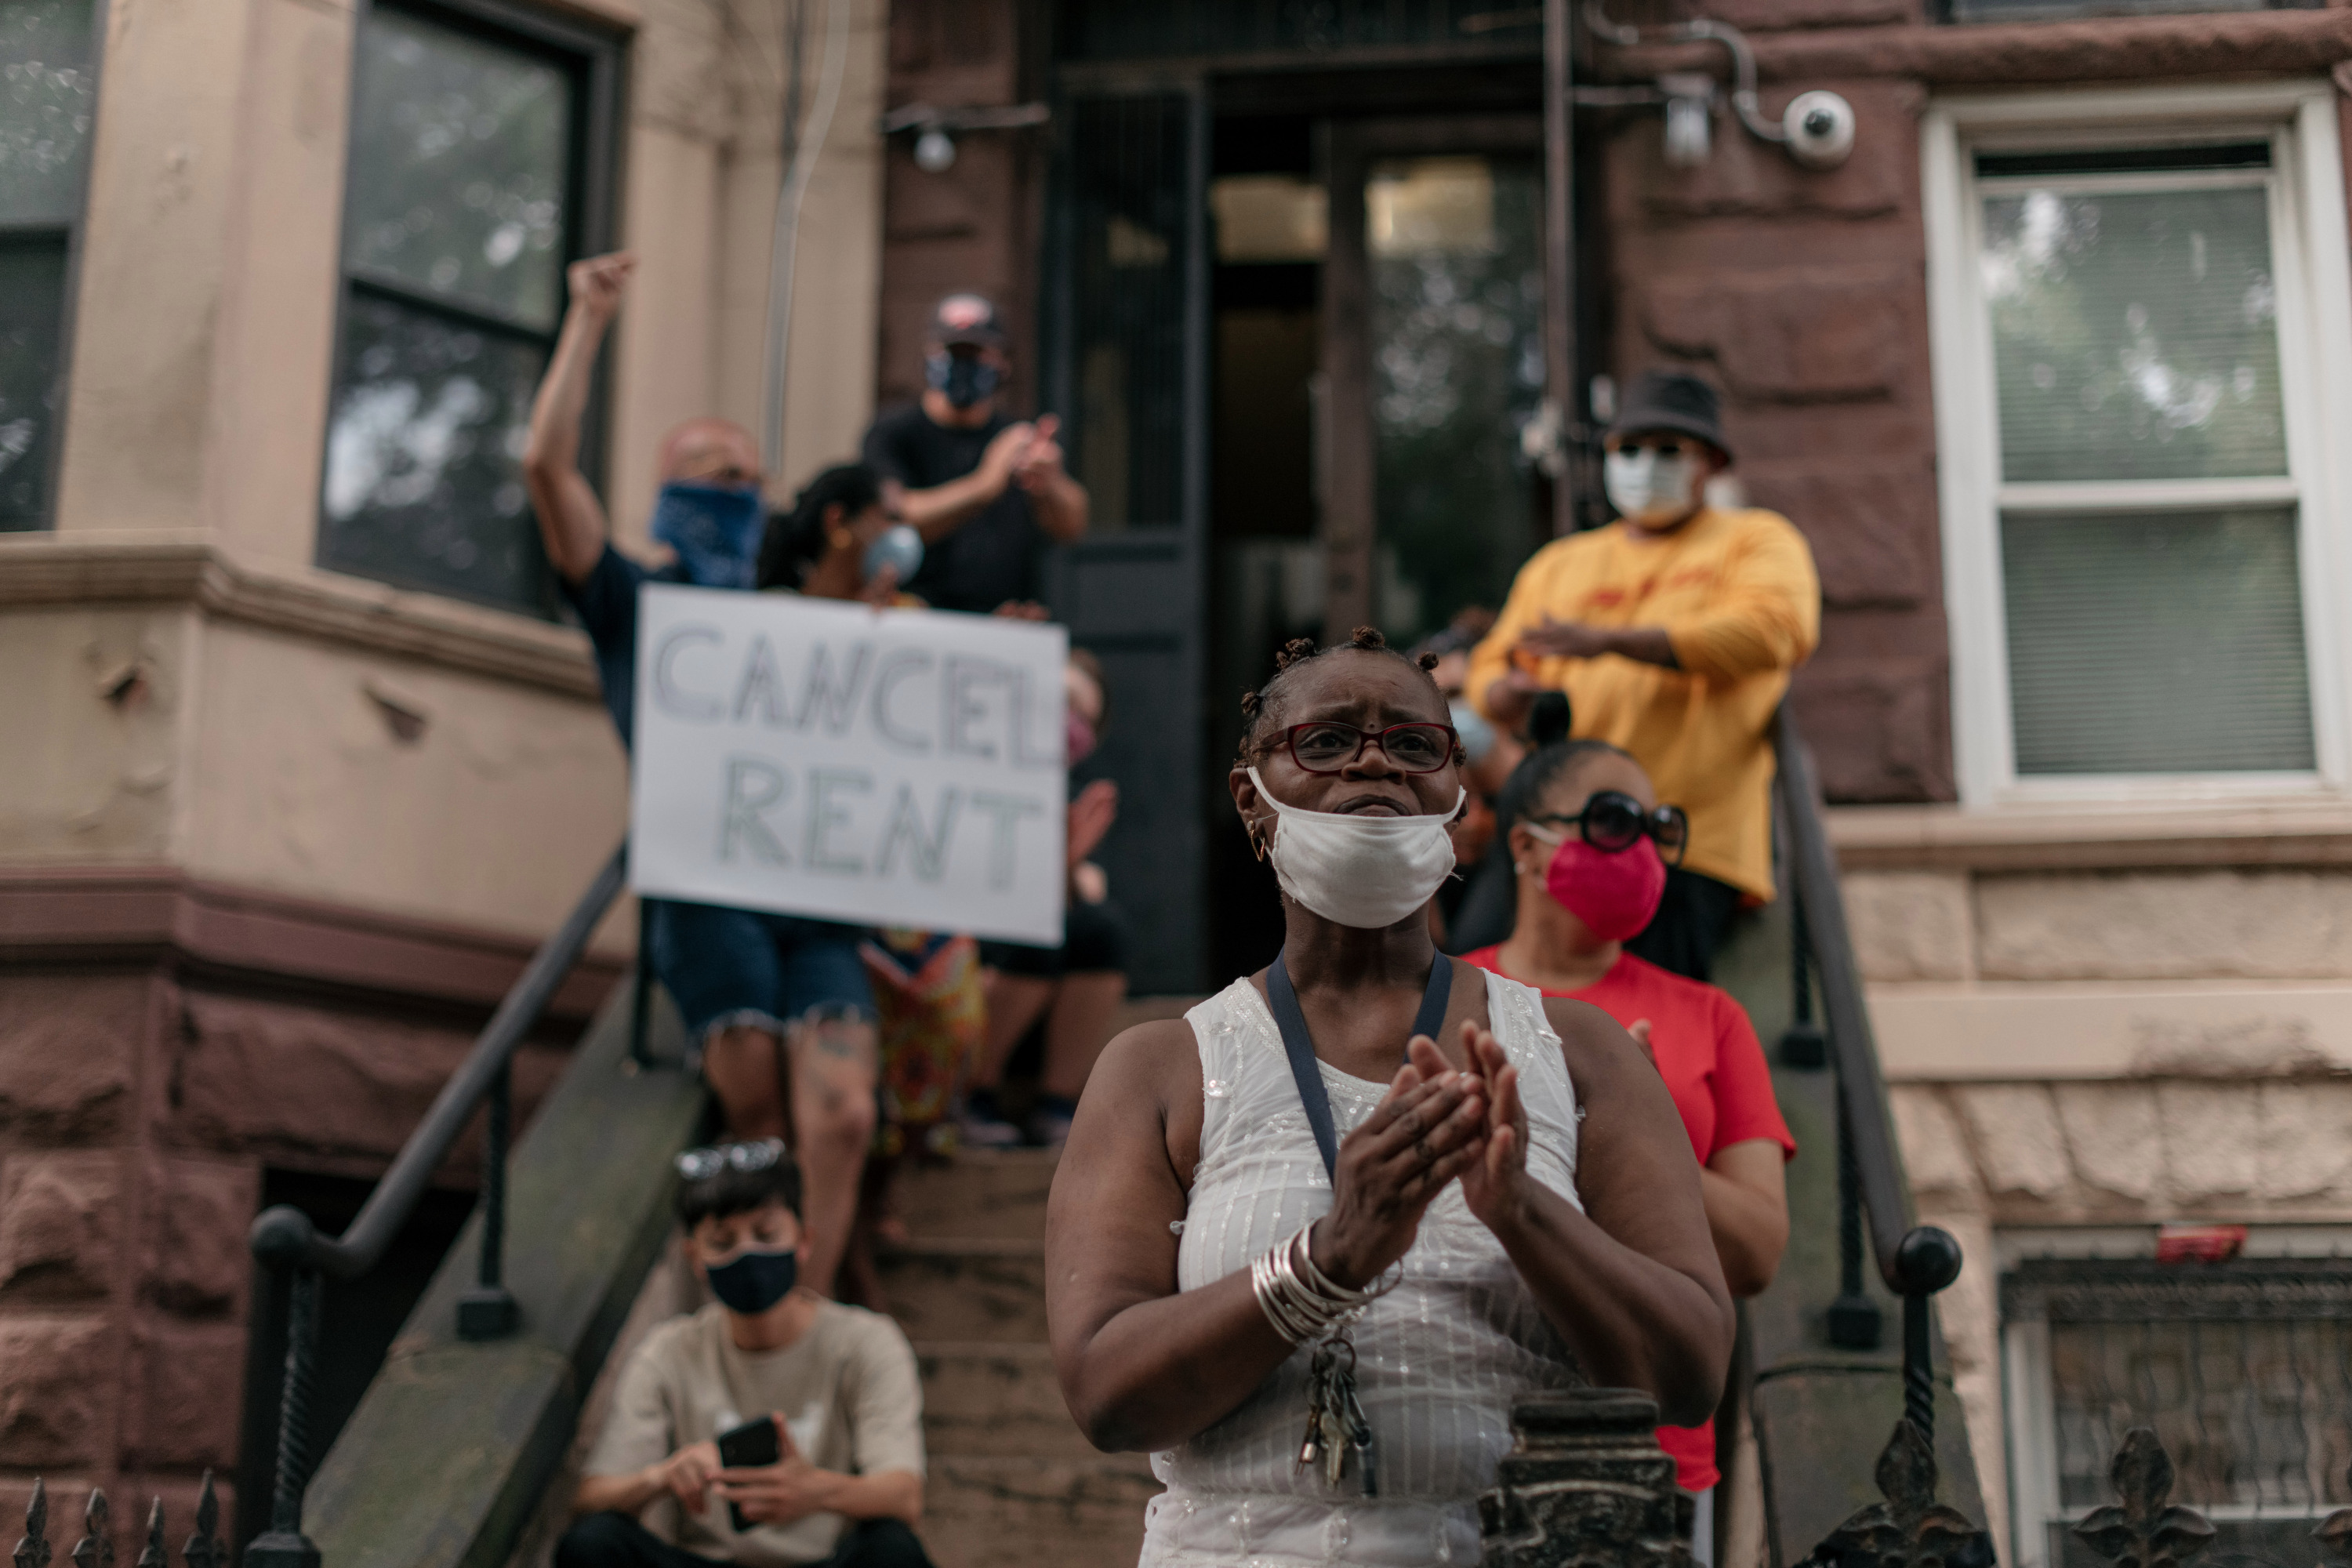 Activists gather in Brooklyn to cancel rent.